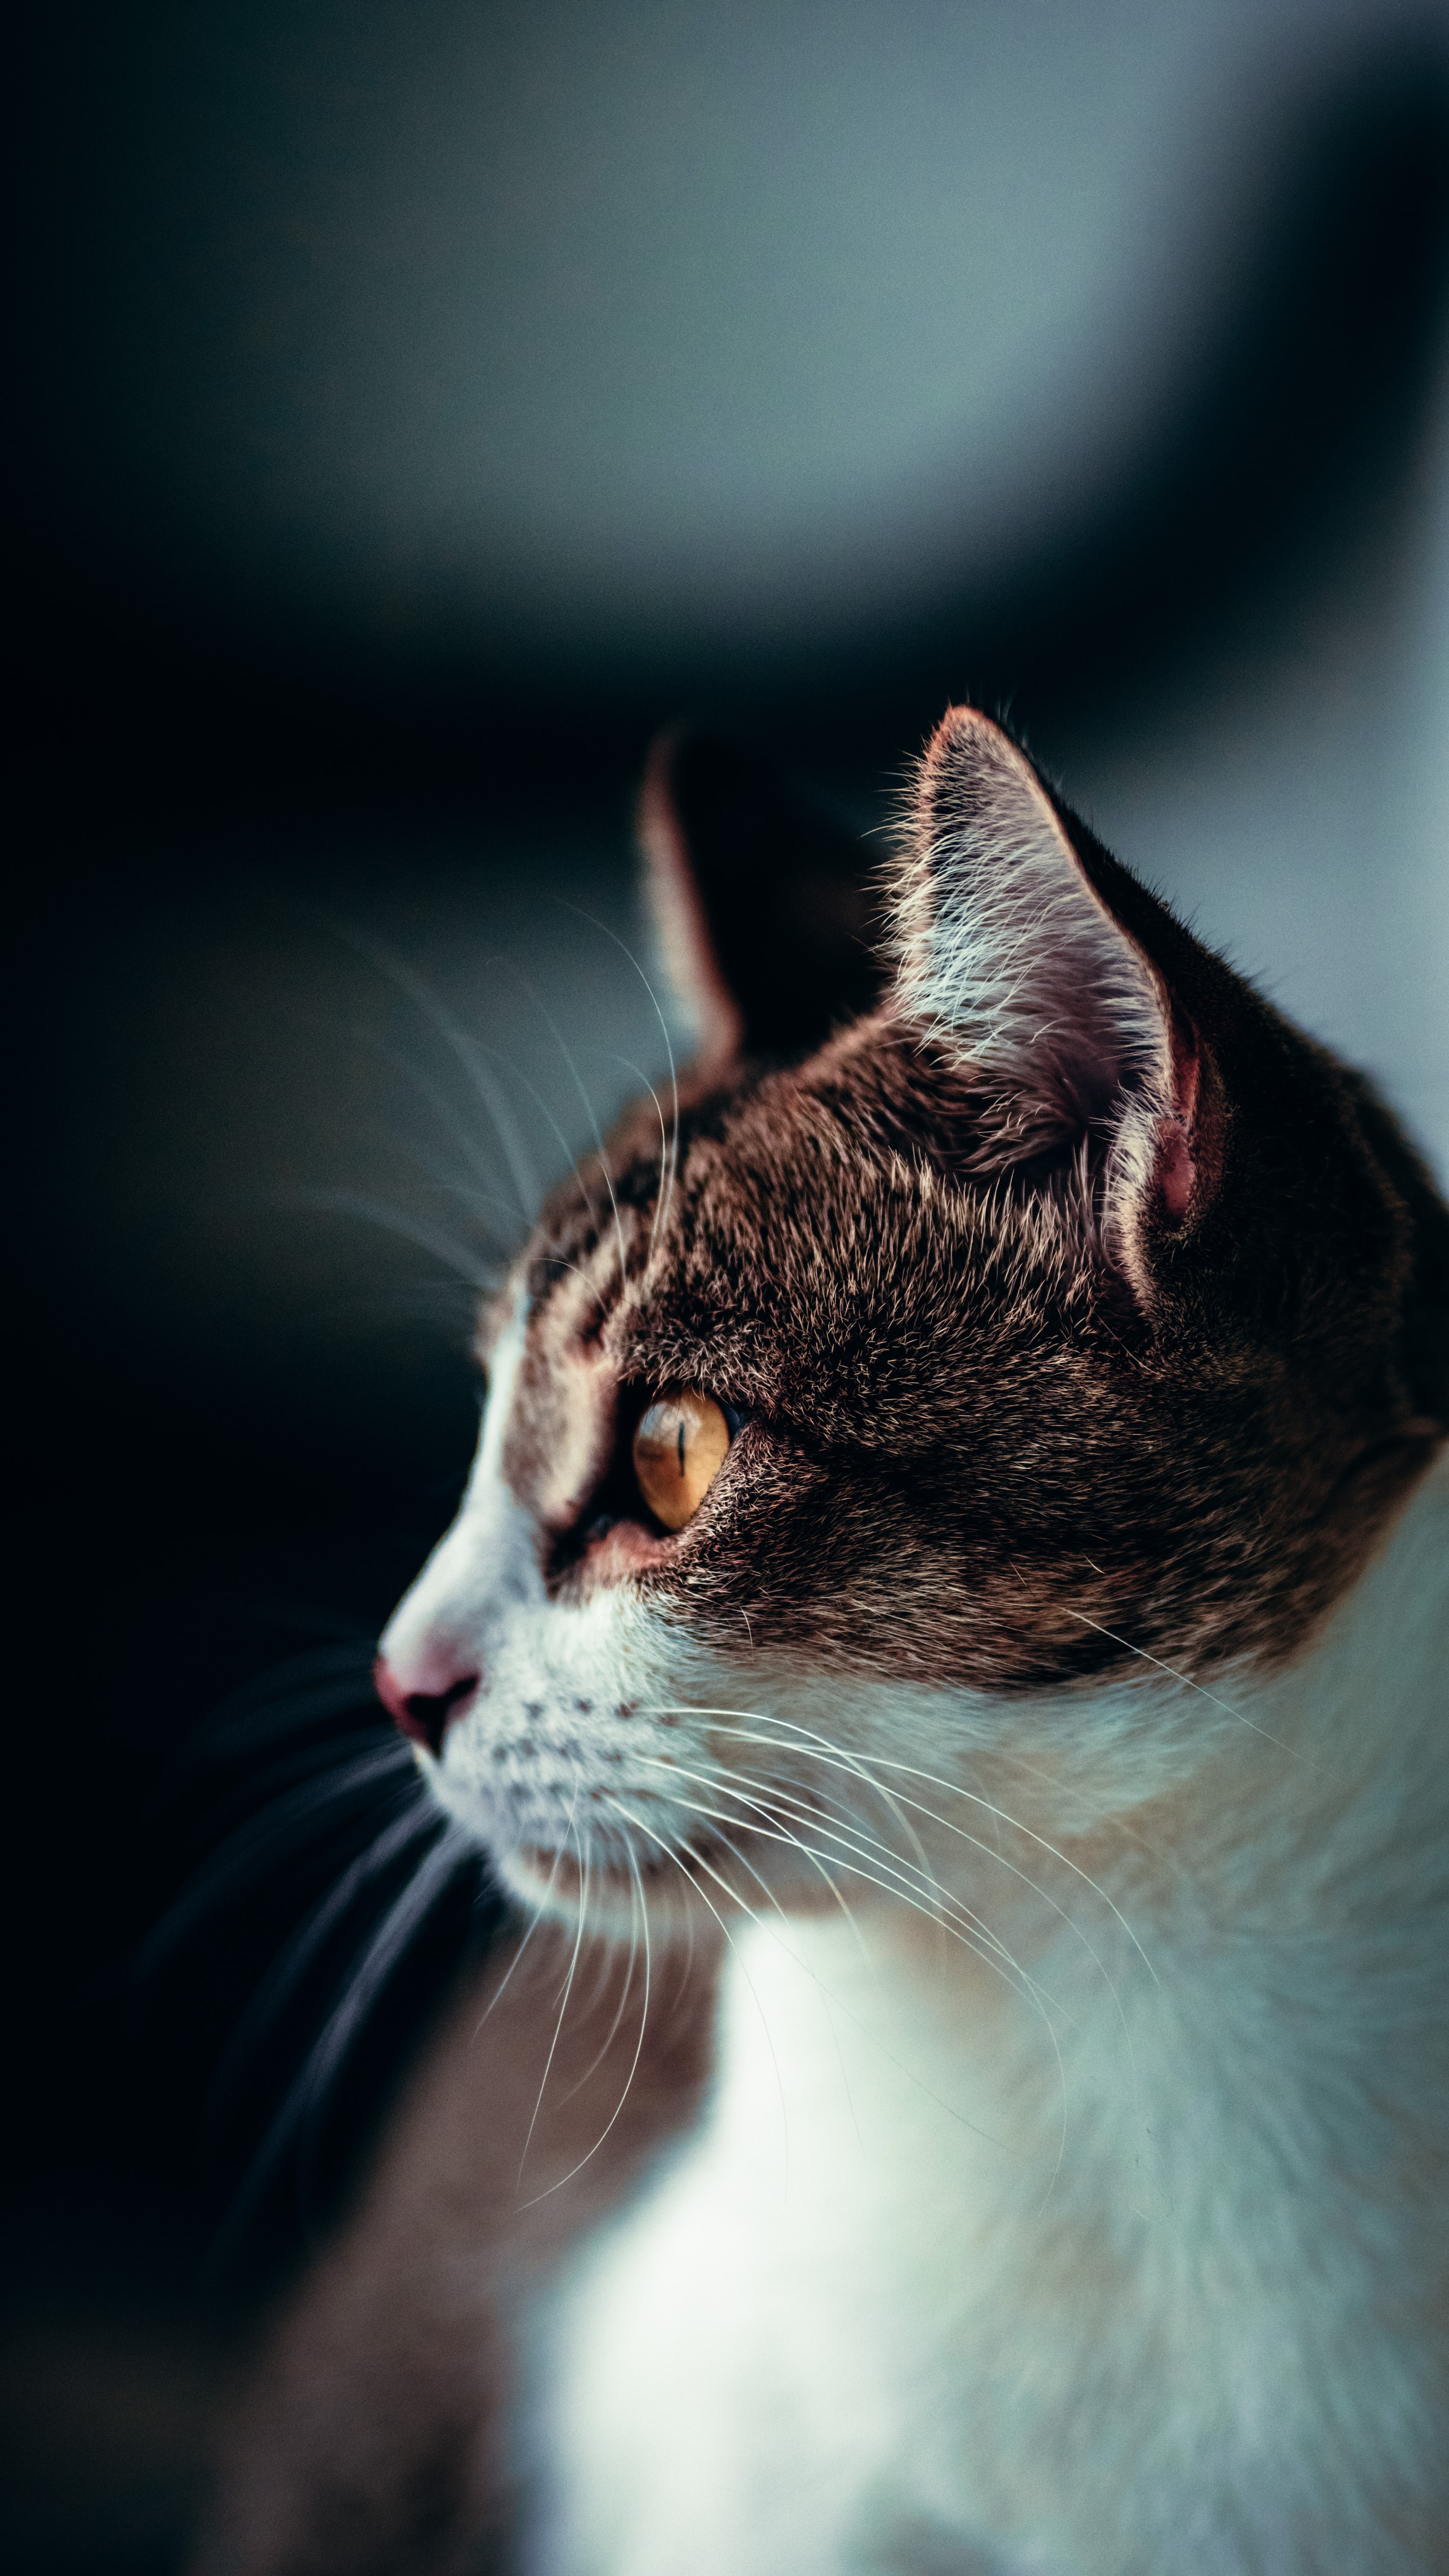 154925 download wallpaper Animals, Cat, Profile, Pet, Sight, Opinion screensavers and pictures for free